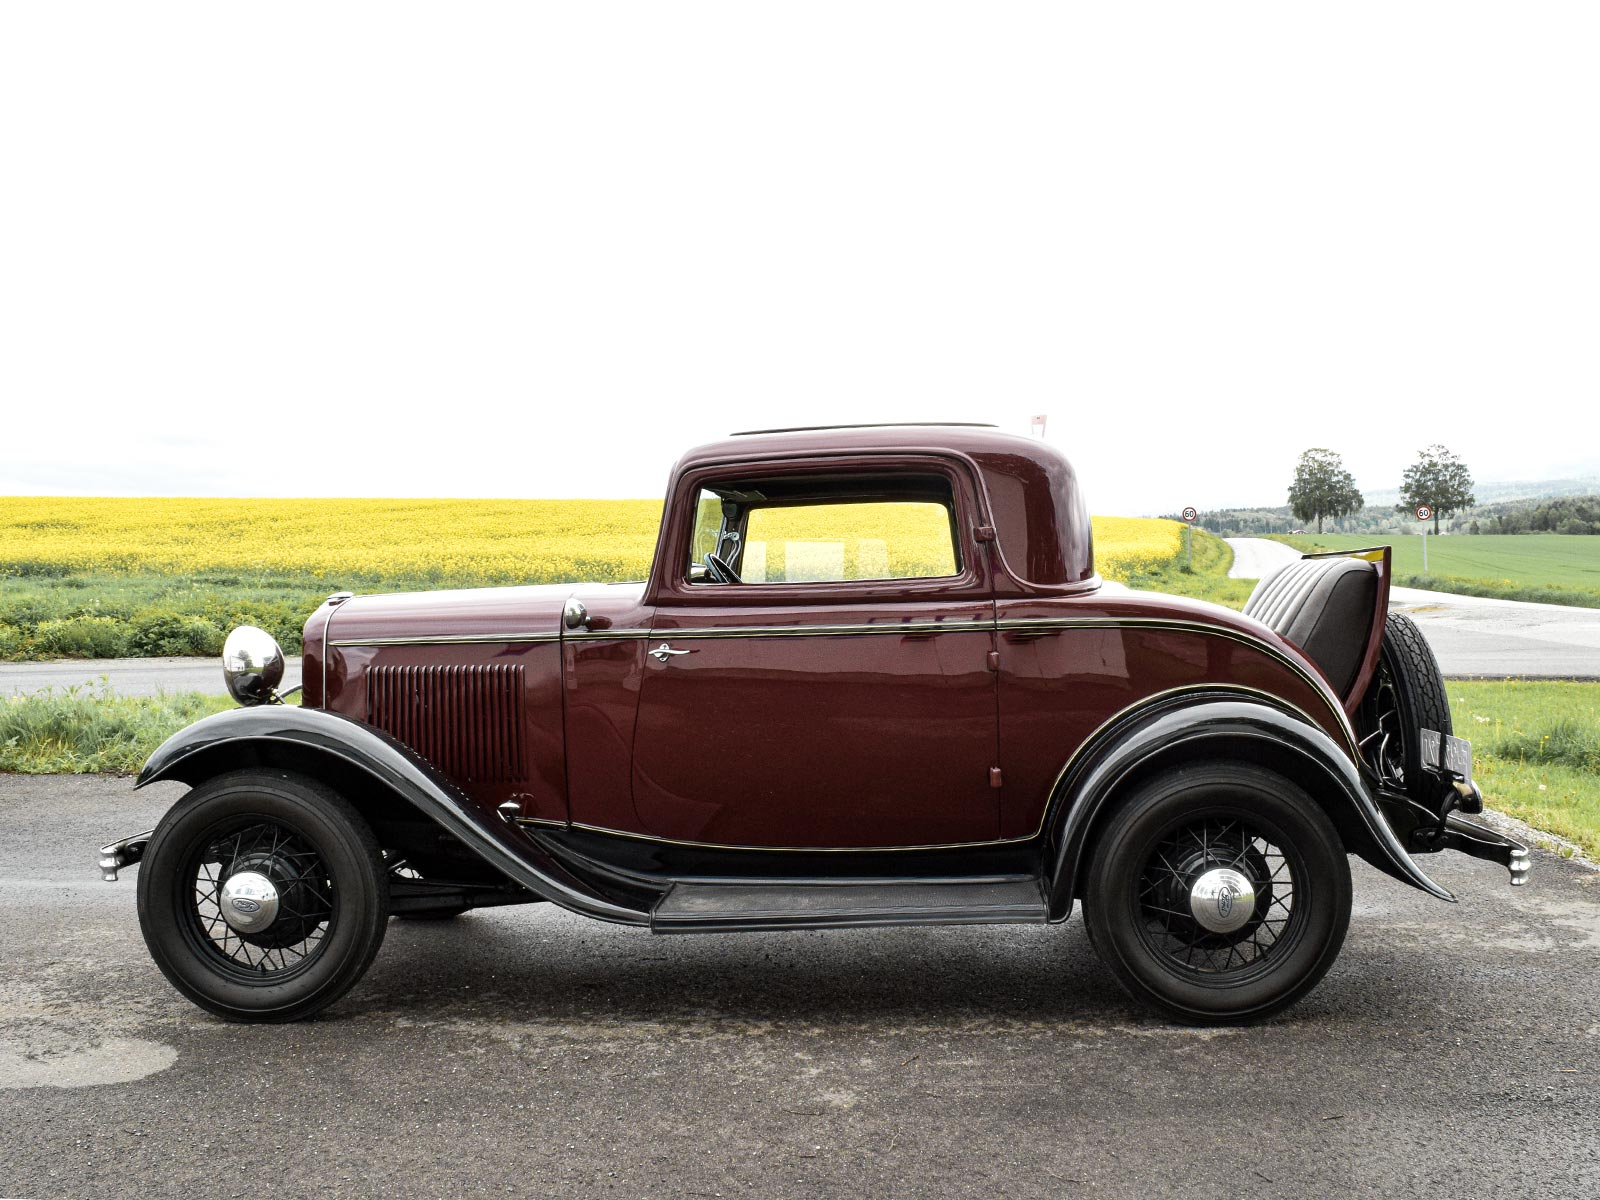 Ford B Coupe 1932 modell.